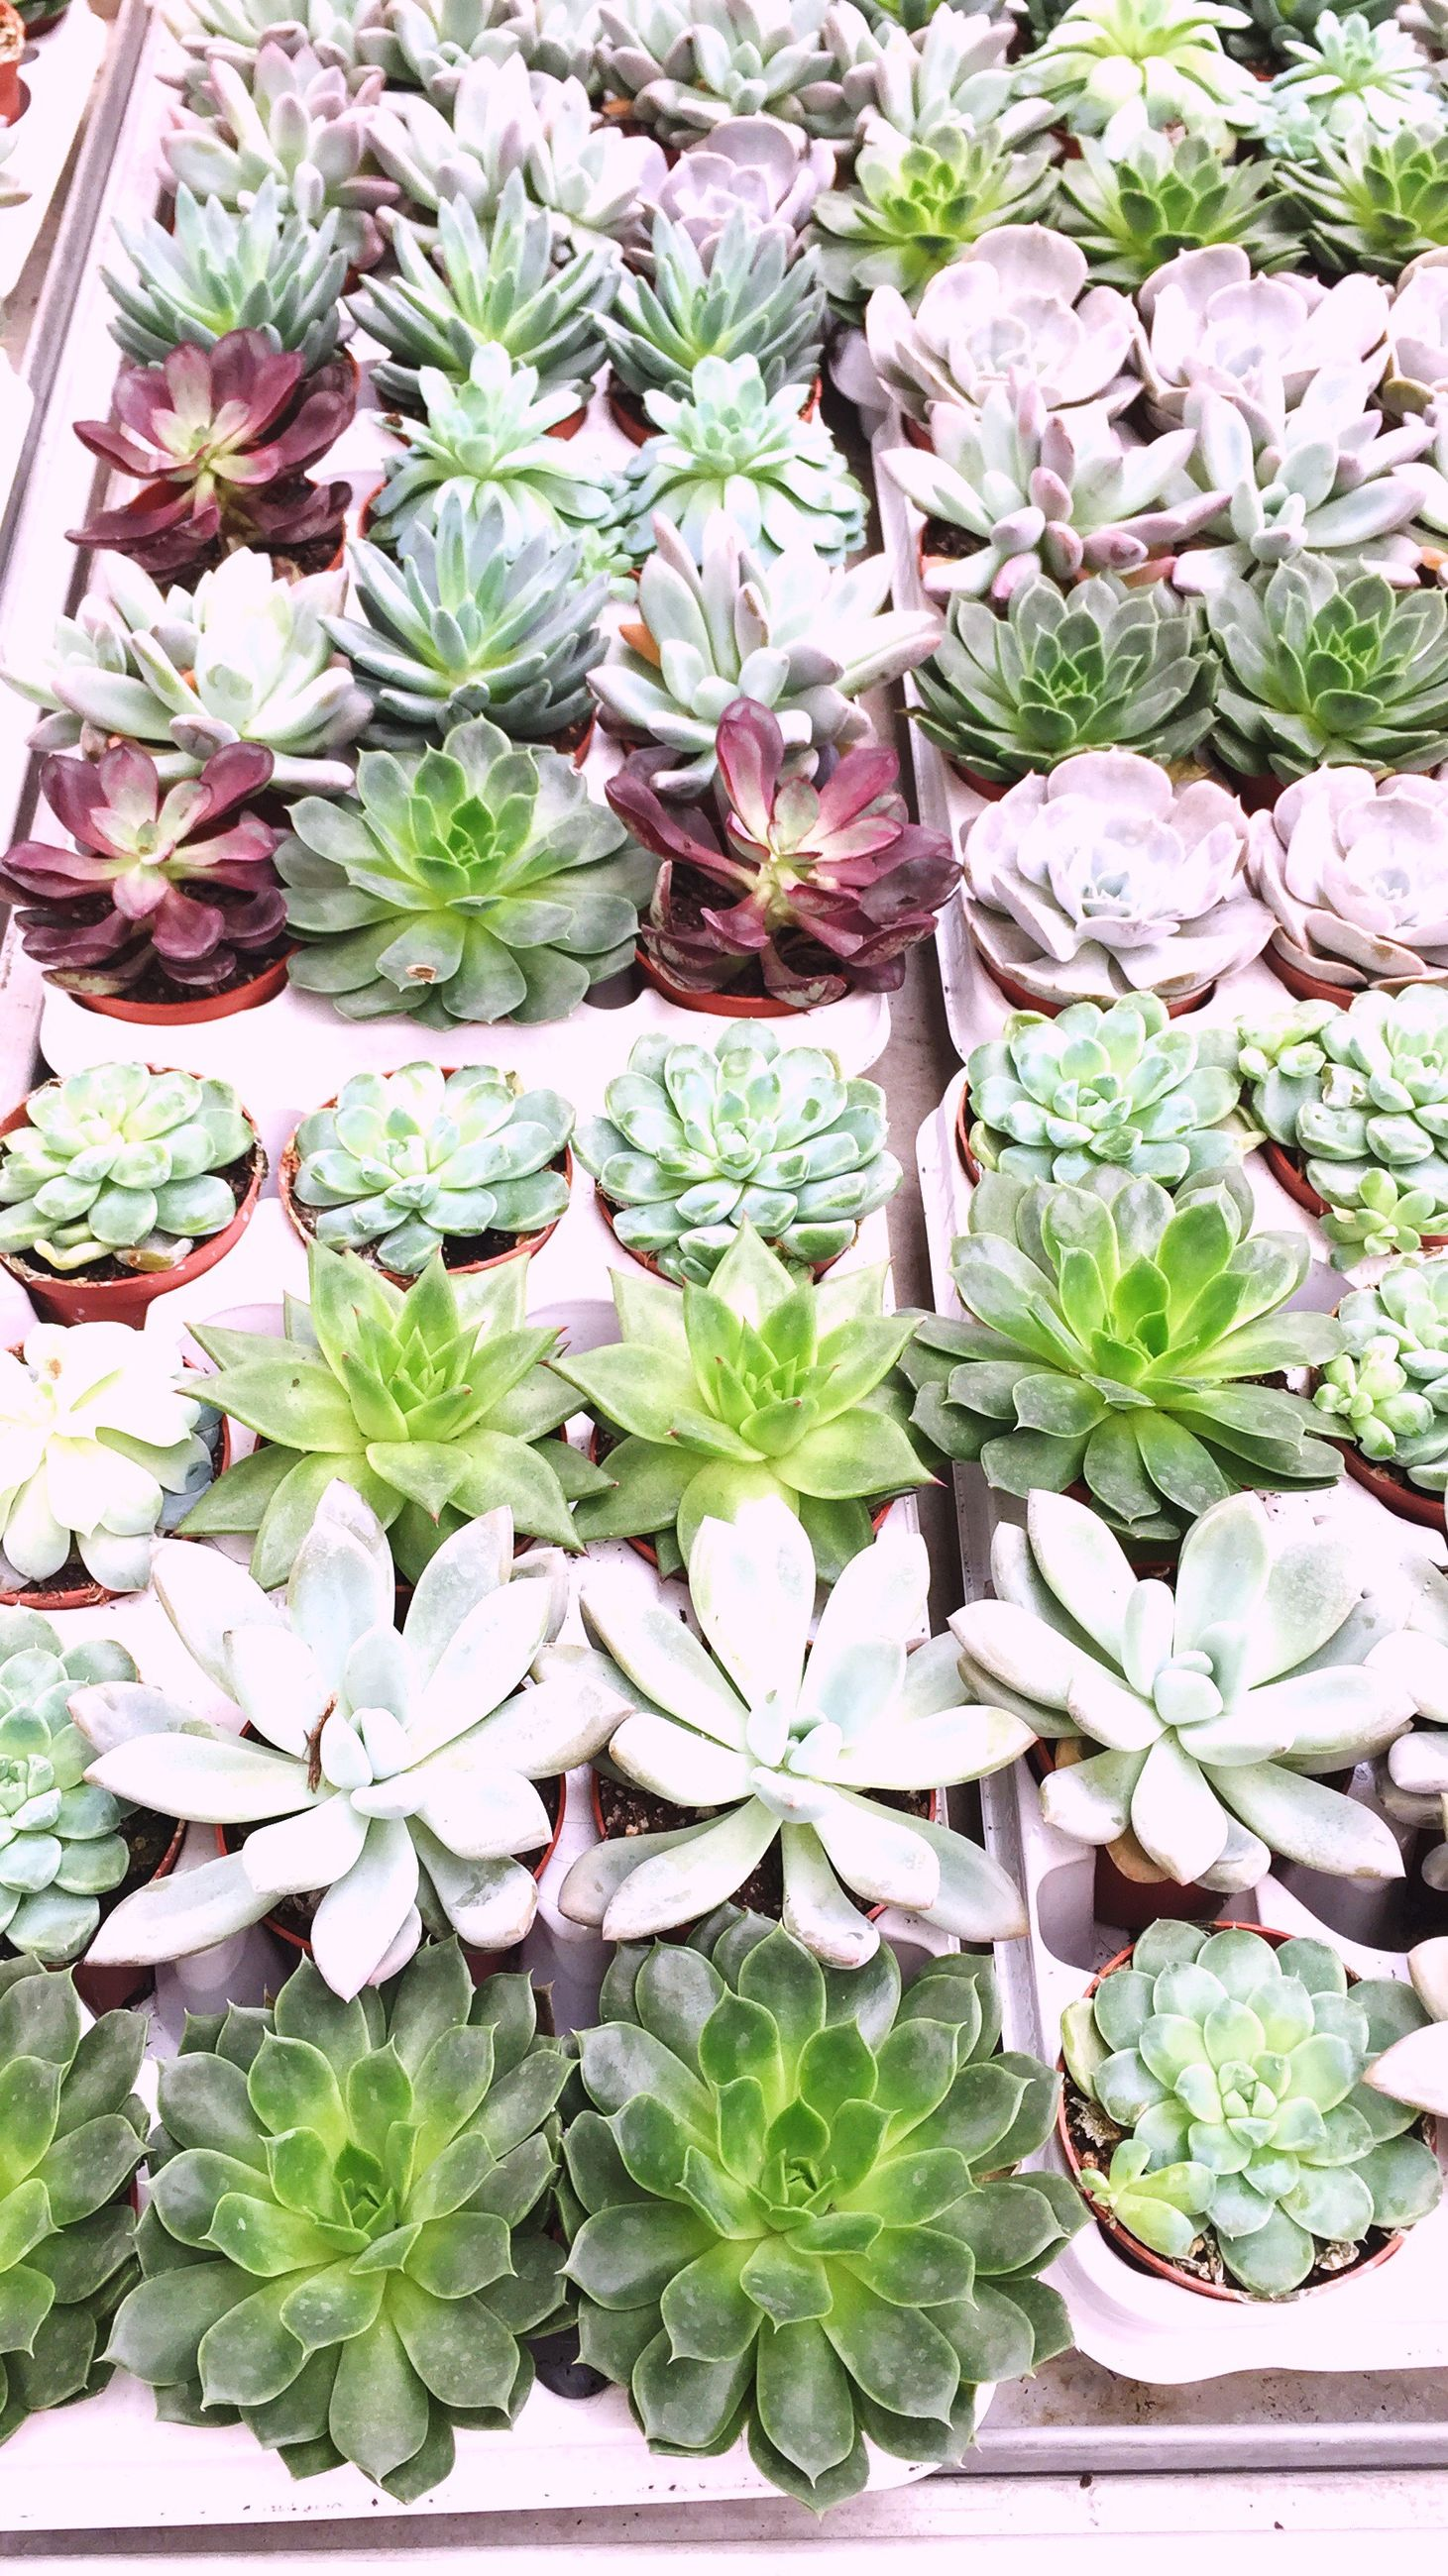 growth, plant, leaf, high angle view, freshness, potted plant, nature, beauty in nature, close-up, green color, fragility, flower, green, repetition, day, succulent plant, botany, growing, pink, outdoors, blossom, full frame, petal, plant life, in bloom, retail, springtime